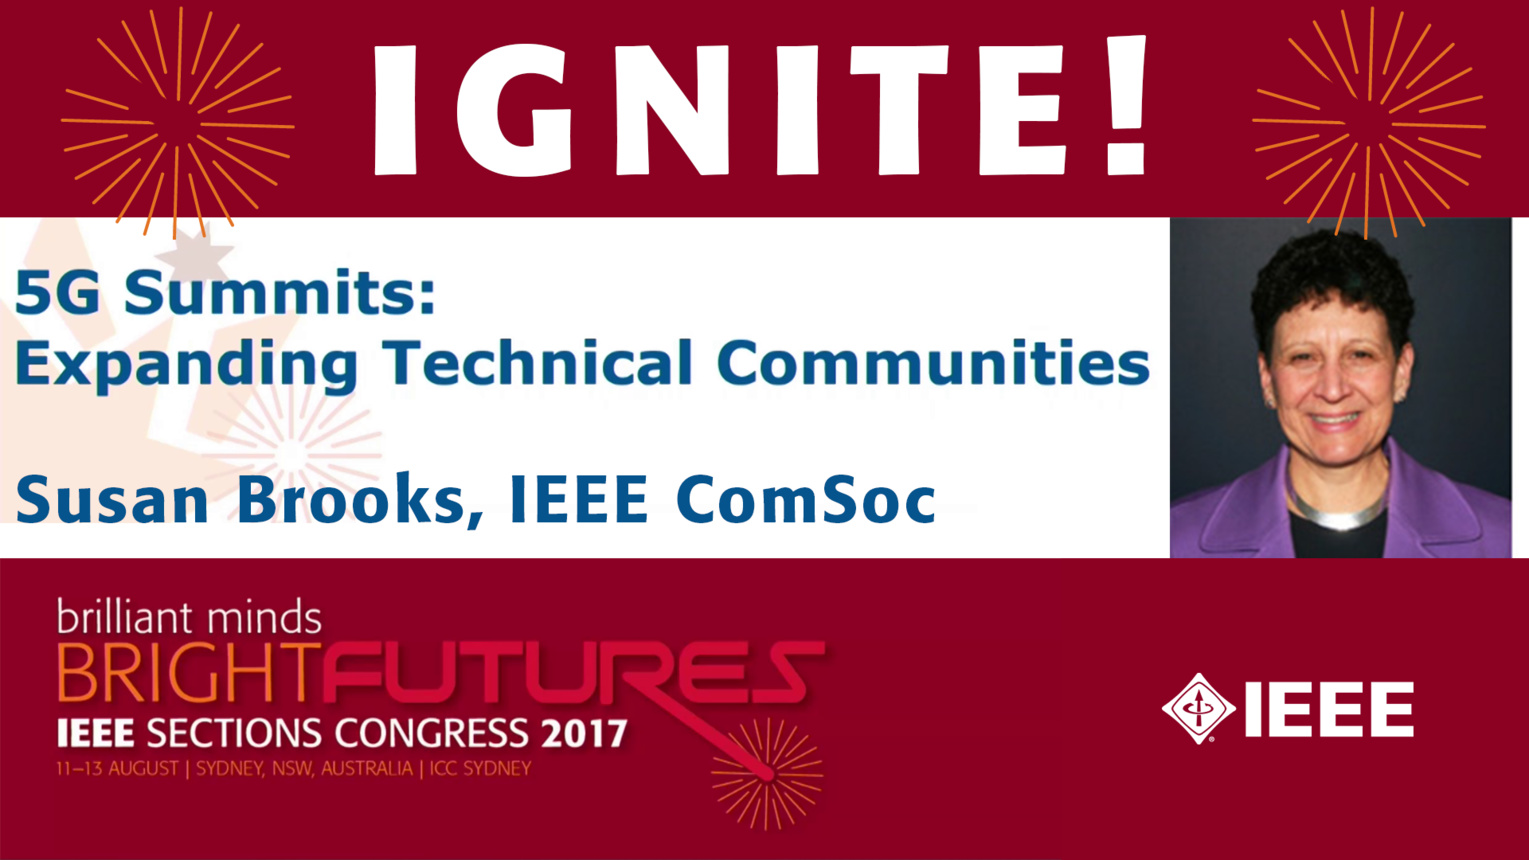 5G Summits: Expanding Technical Communities - Susan Brooks - Ignite: Sections Congress 2017